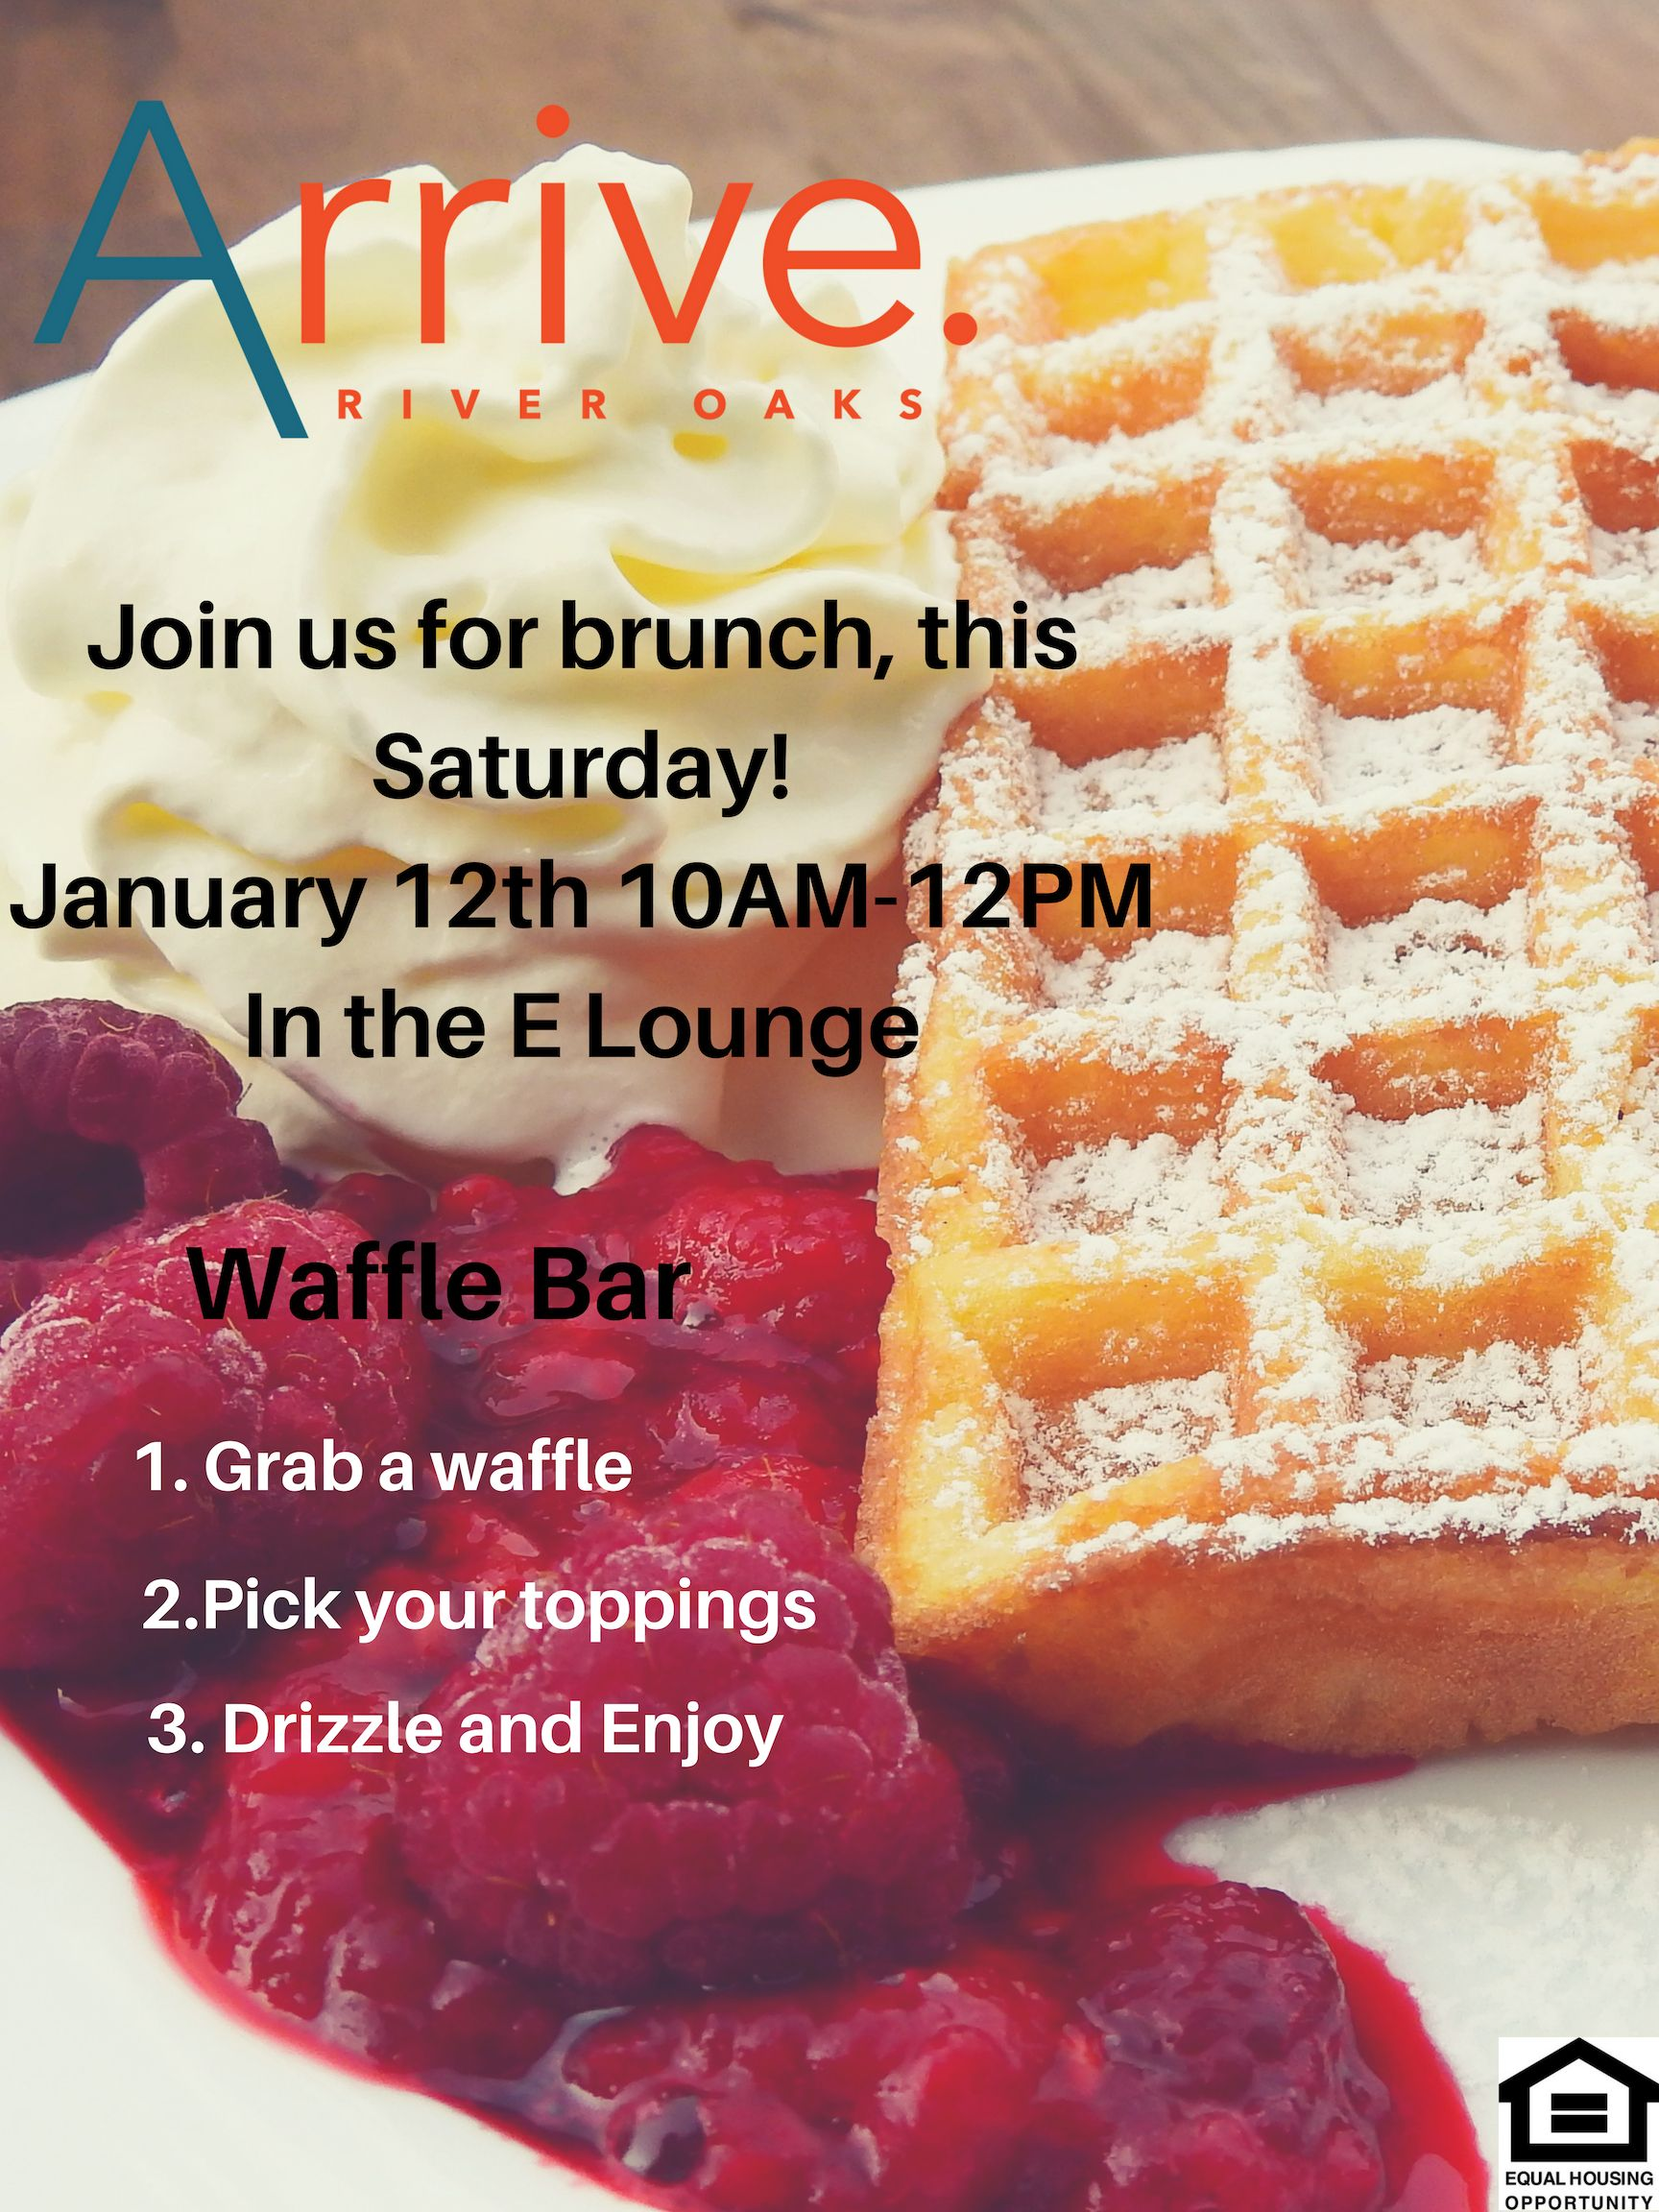 Join us for a Waffle Bar Brunch this Saturday! Stop by